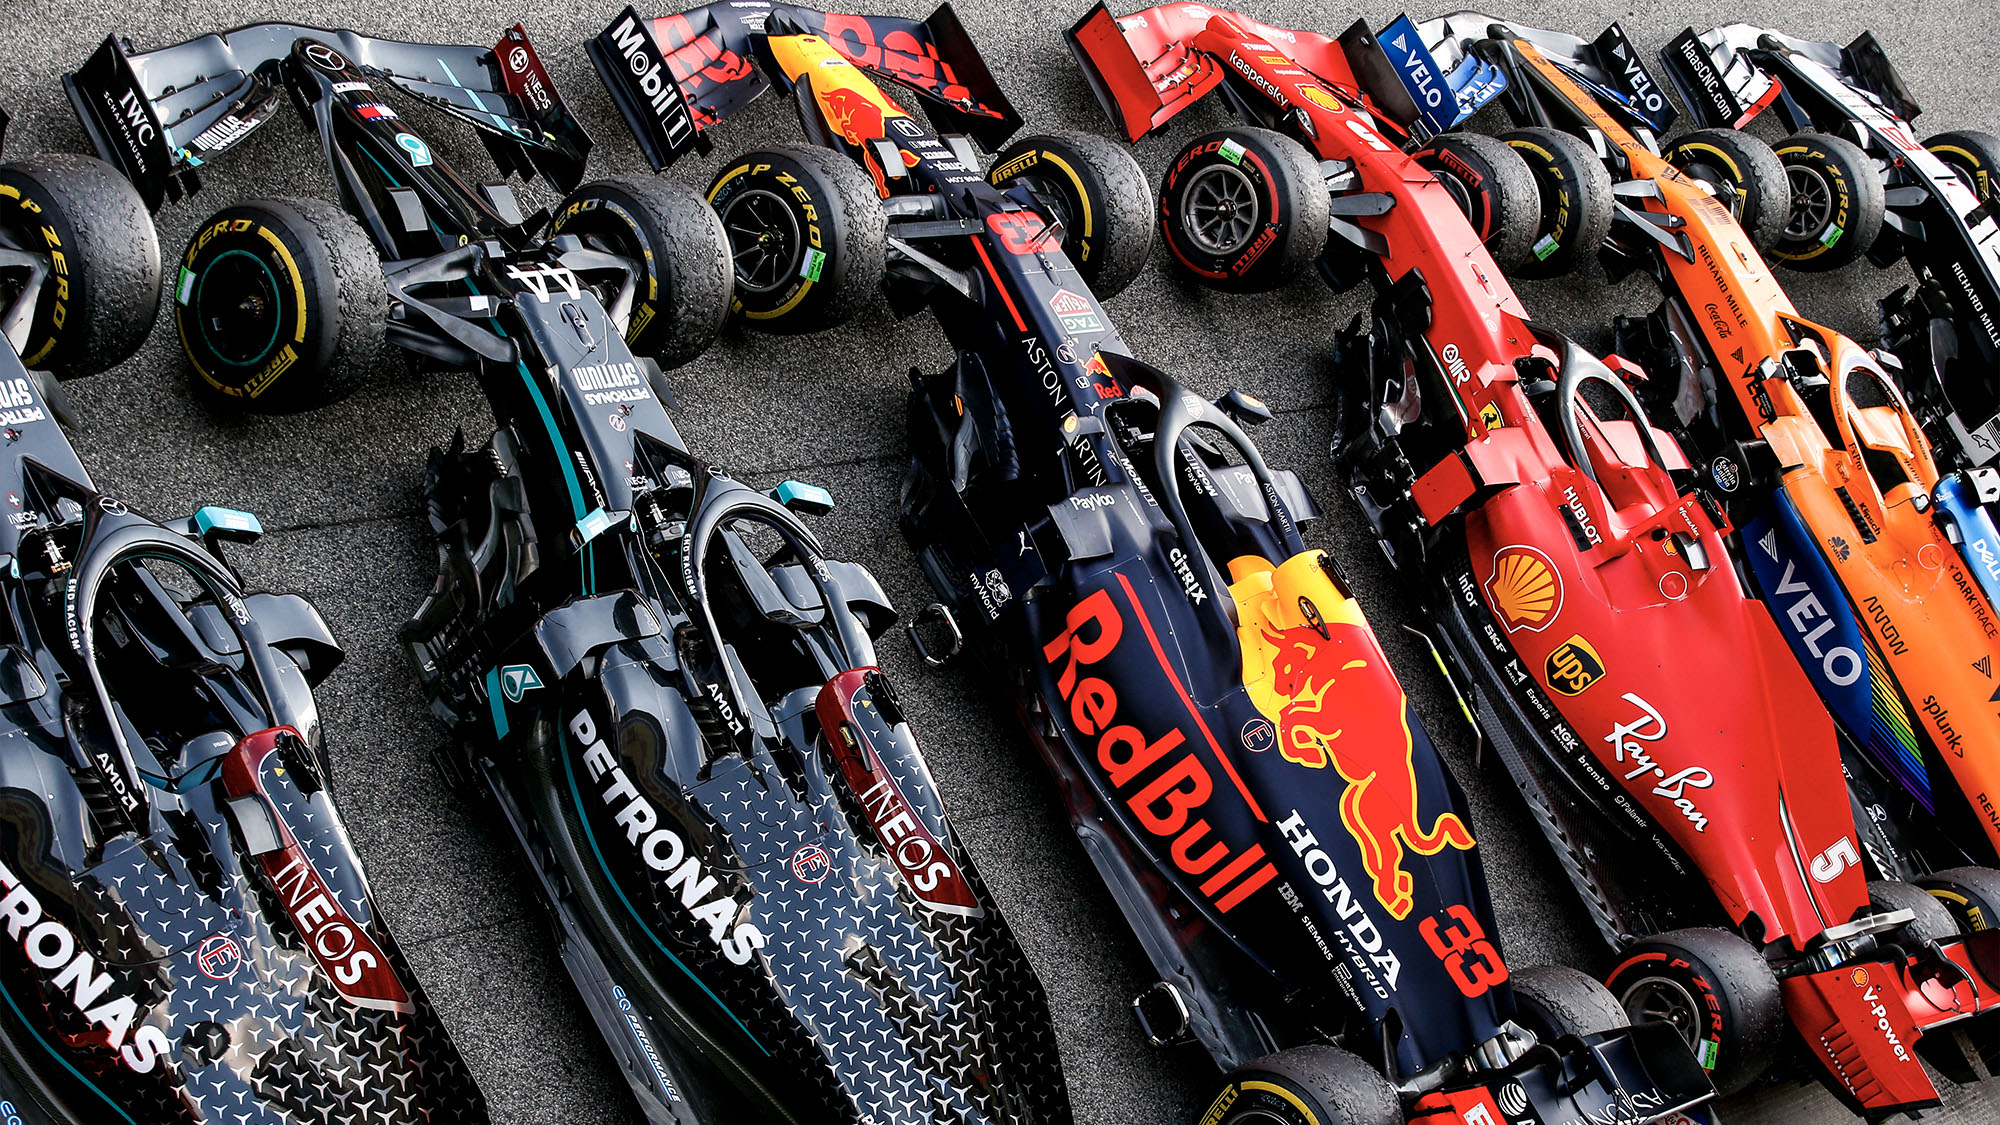 McLaren-Ferrari-red-Bull-and-Mercedes-cars-lined-up-in-parc-ferme-after-the-2020-F1-Spanish-Grand-Prix